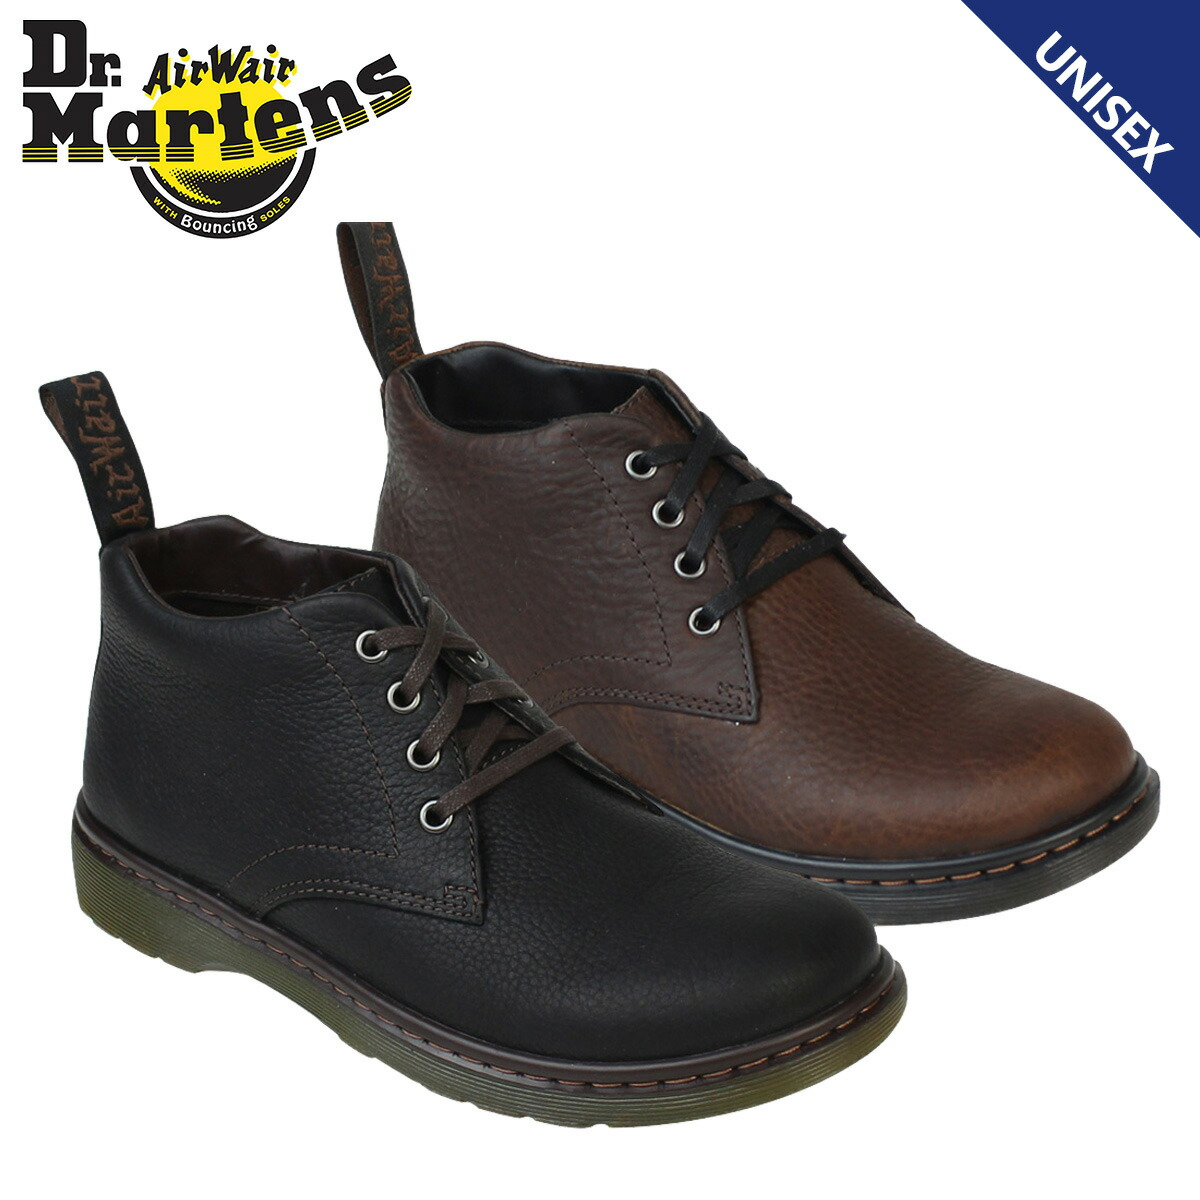 Find great deals on eBay for dr martin work boots. Shop with confidence.